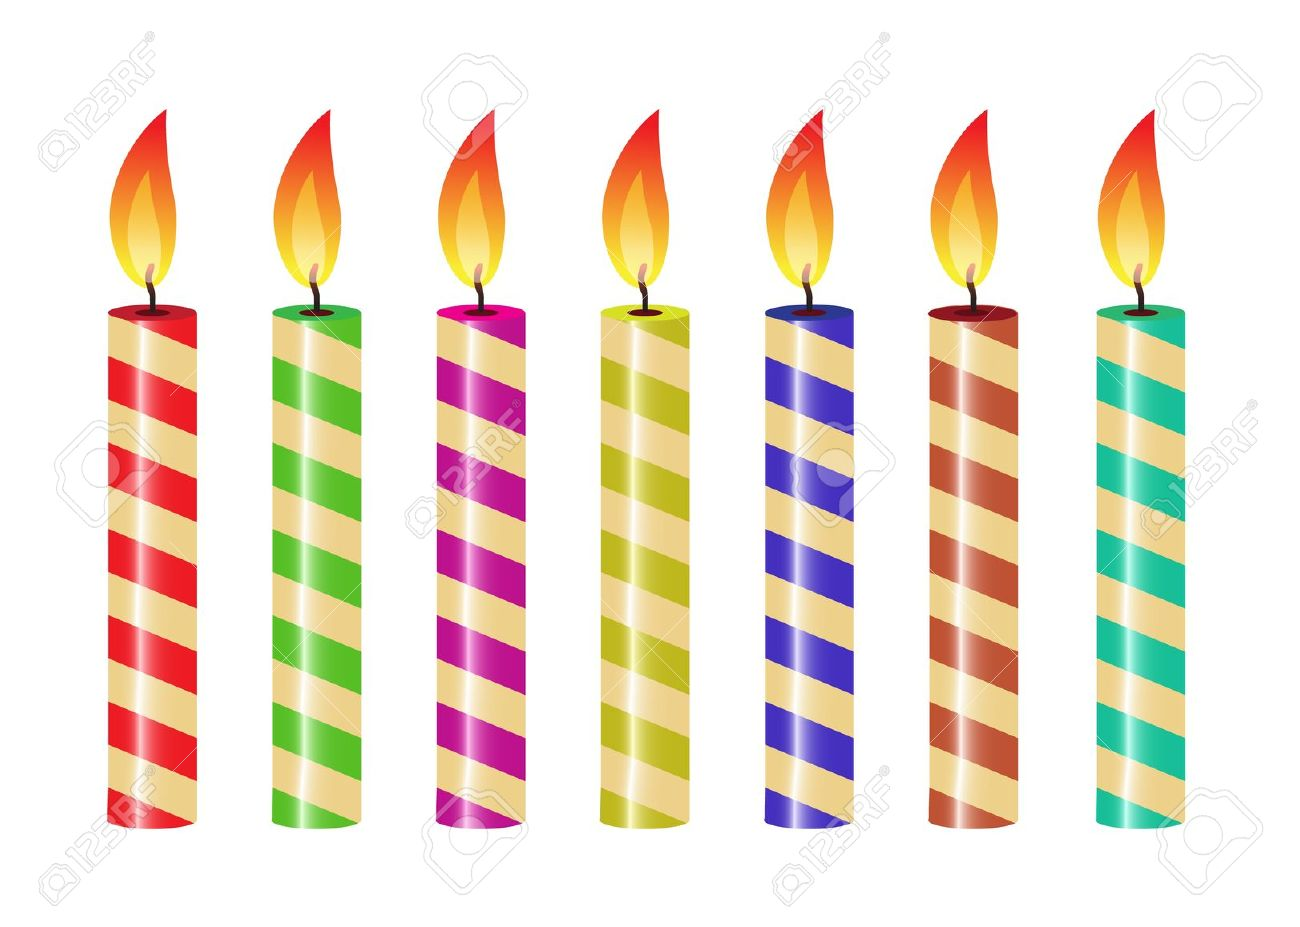 birthday candle clipart ; birthday-candle-clipart-free-13